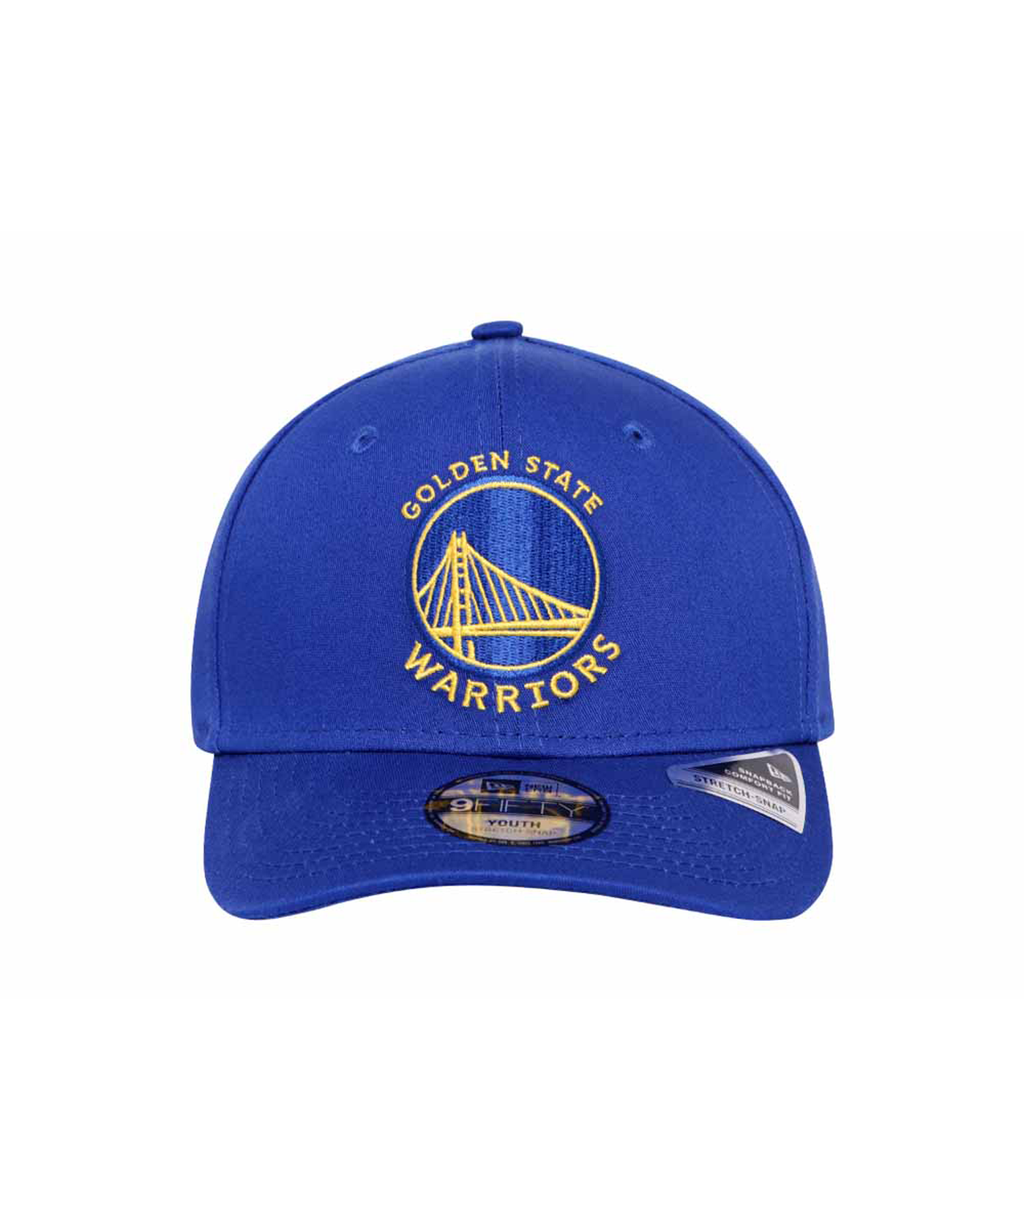 Golden State Warriors New Era Team Stretch 9Fifty Adjustable Hat